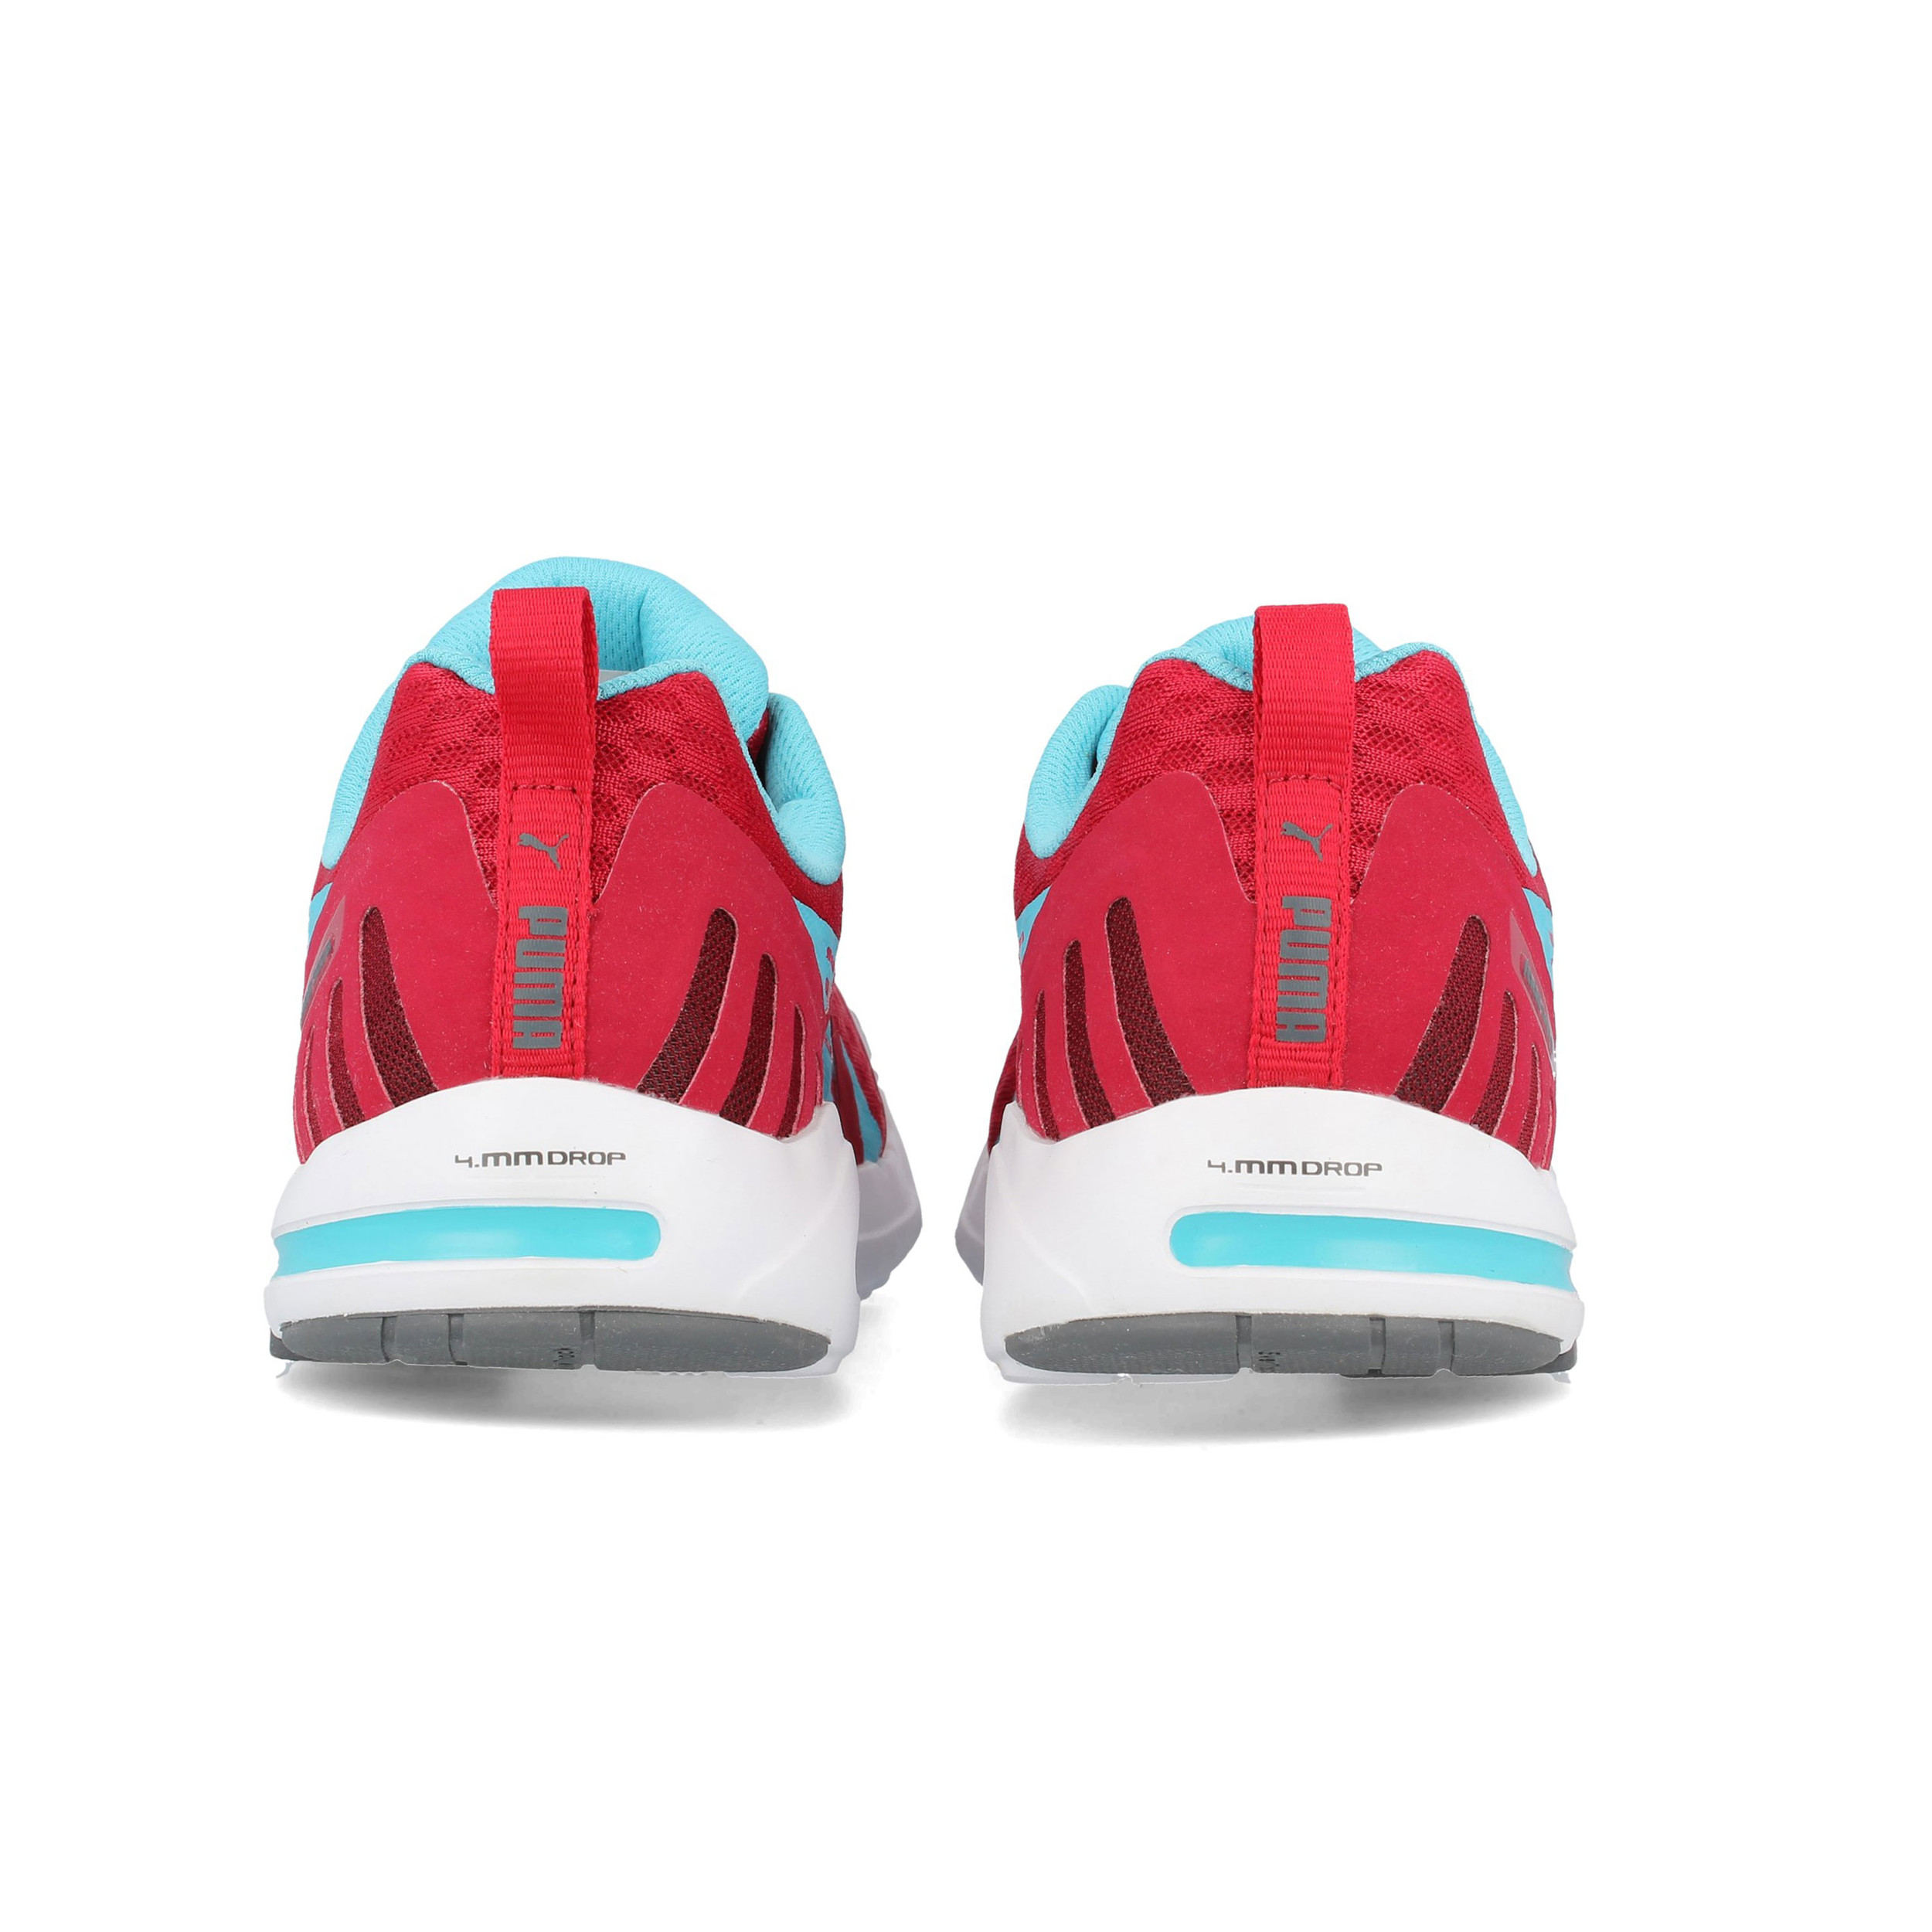 0d901cd8d2f Puma Mens Faas 300 S Running Shoes Trainers Sneakers Red Sports Breathable